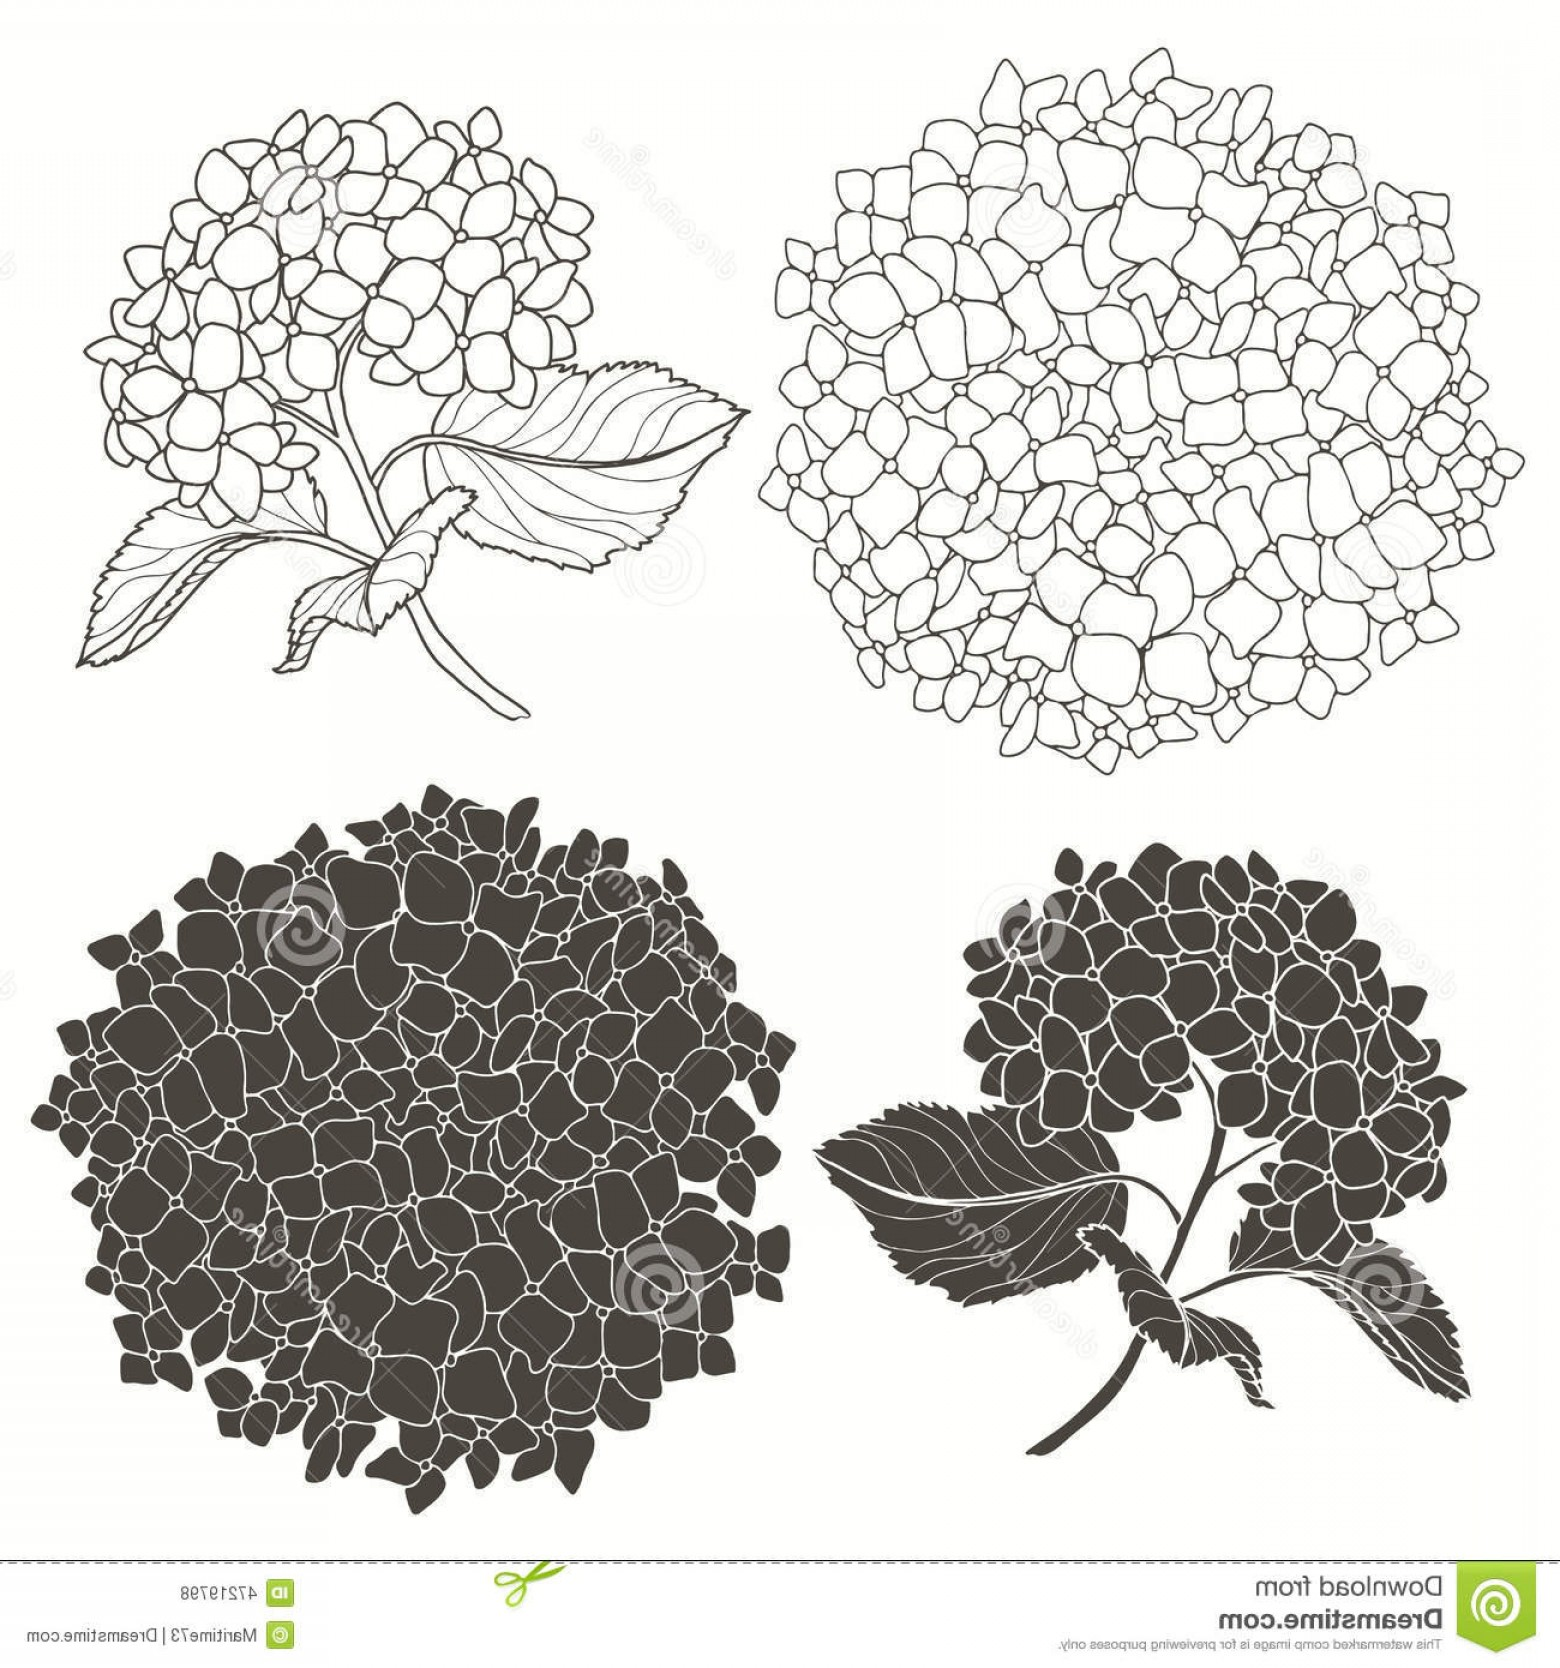 Hydrangea Vector Graphics: Stock Illustration Set Hydrangeas Isolated White Background Hand Drawn Vect Hydrangea Flower Vector Illustration Design Element Image